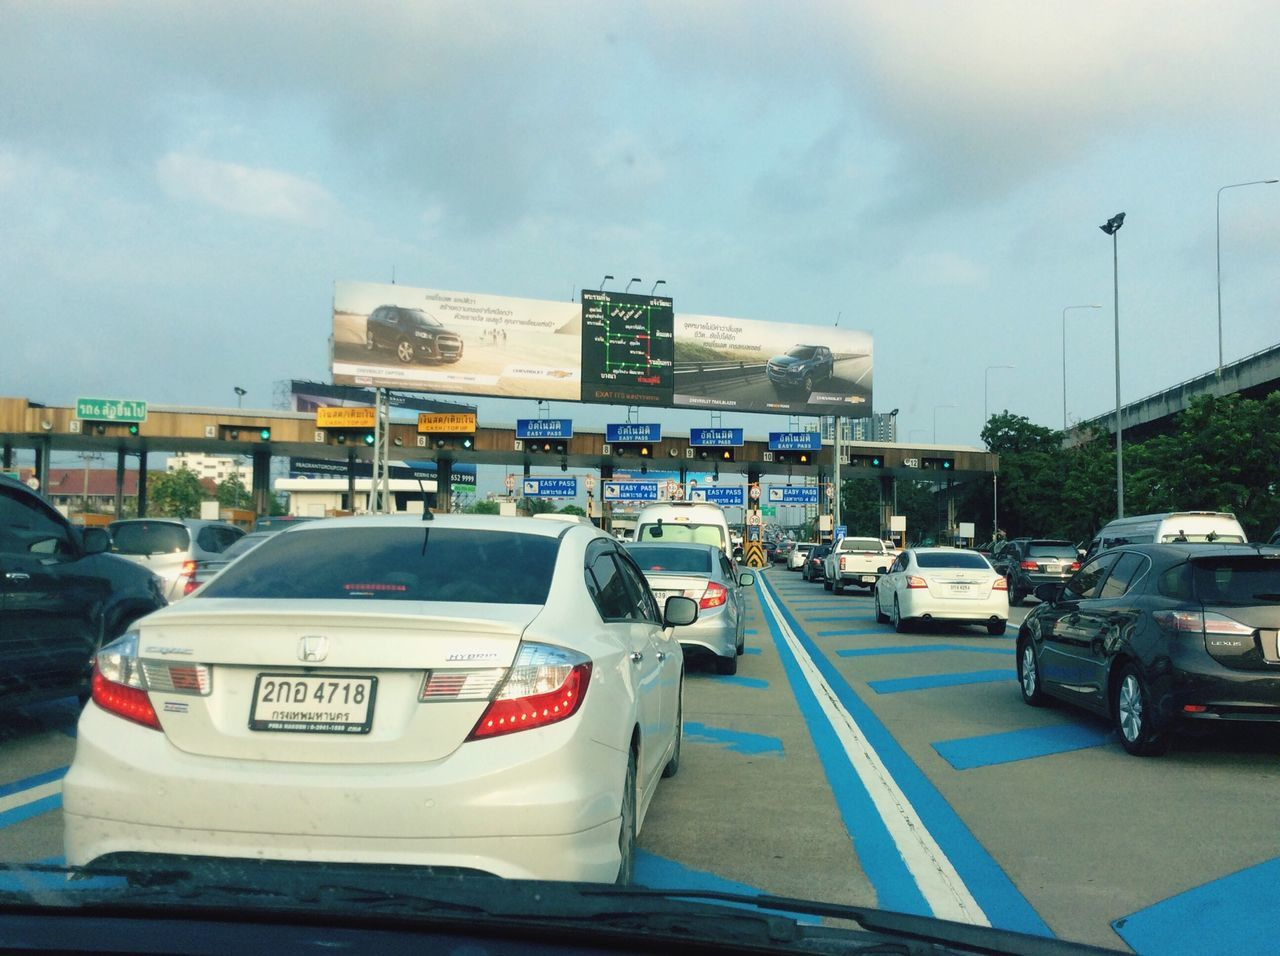 Traffic Expressway Highway Traffic Jam Working Day Capturing Movement Cars Lifestyle Daily On The Road